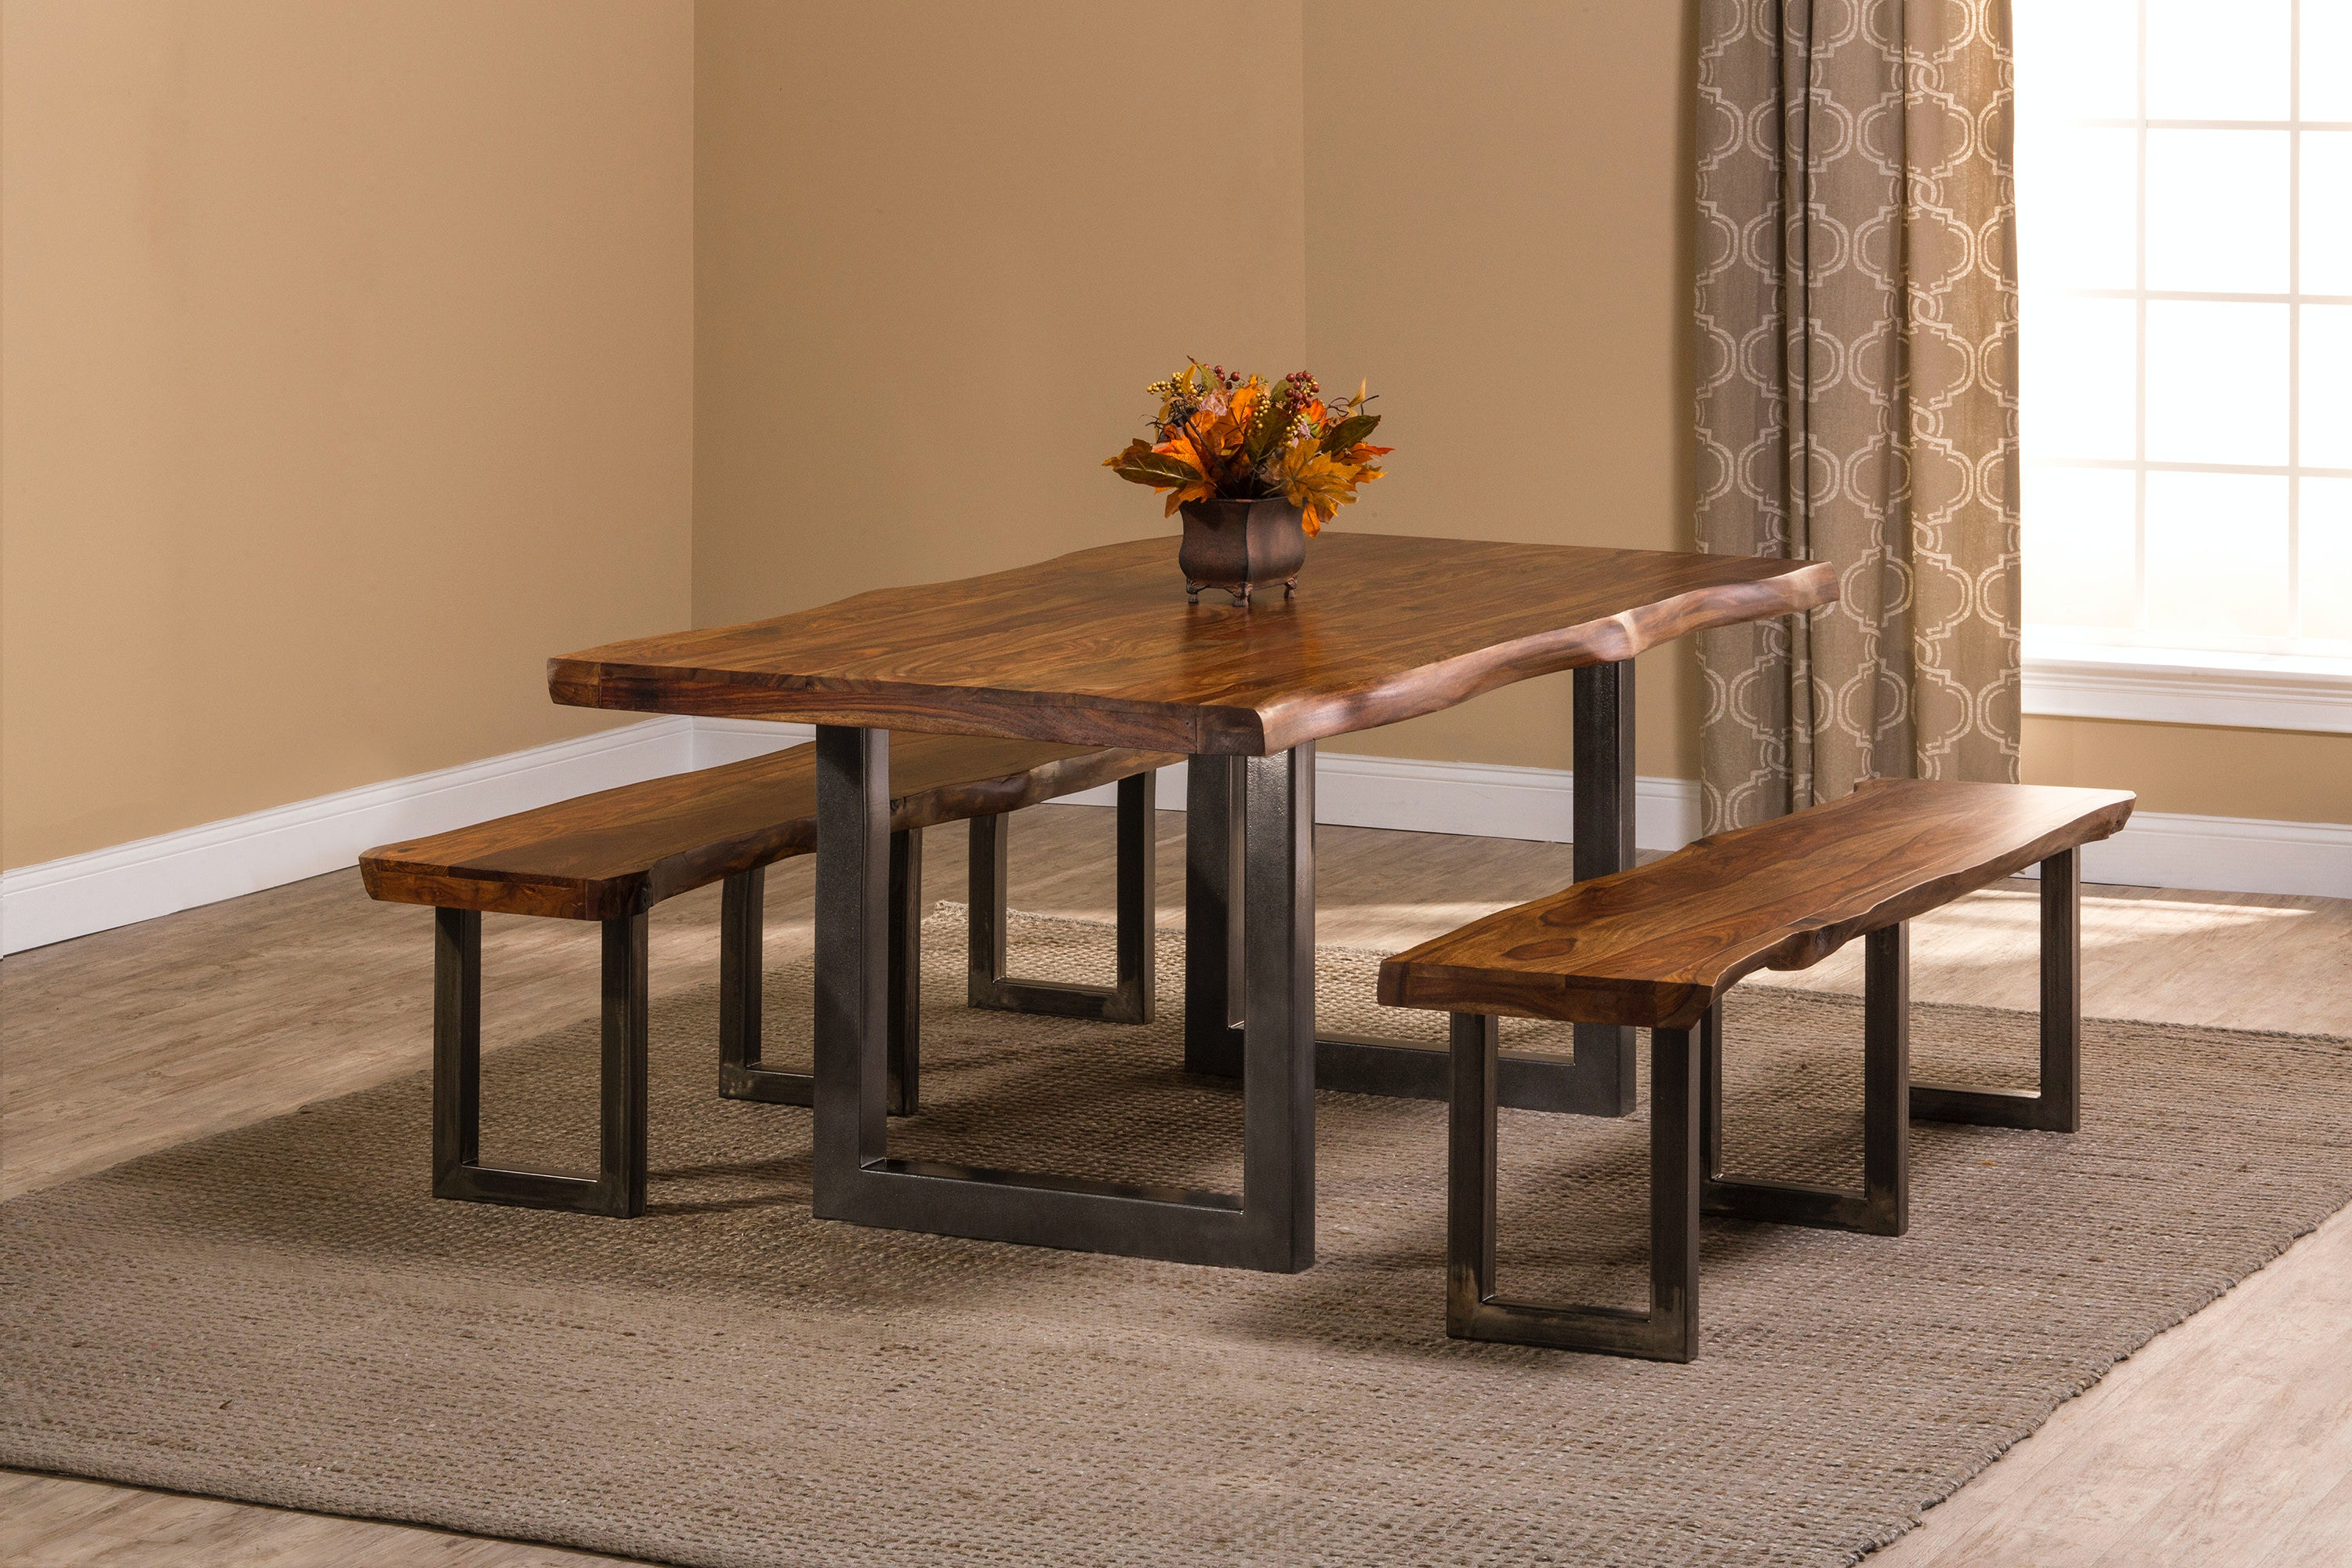 Hillsdale Furniture Emerson 3 Piece Rectangle Dining Set With Two (2)  Benches